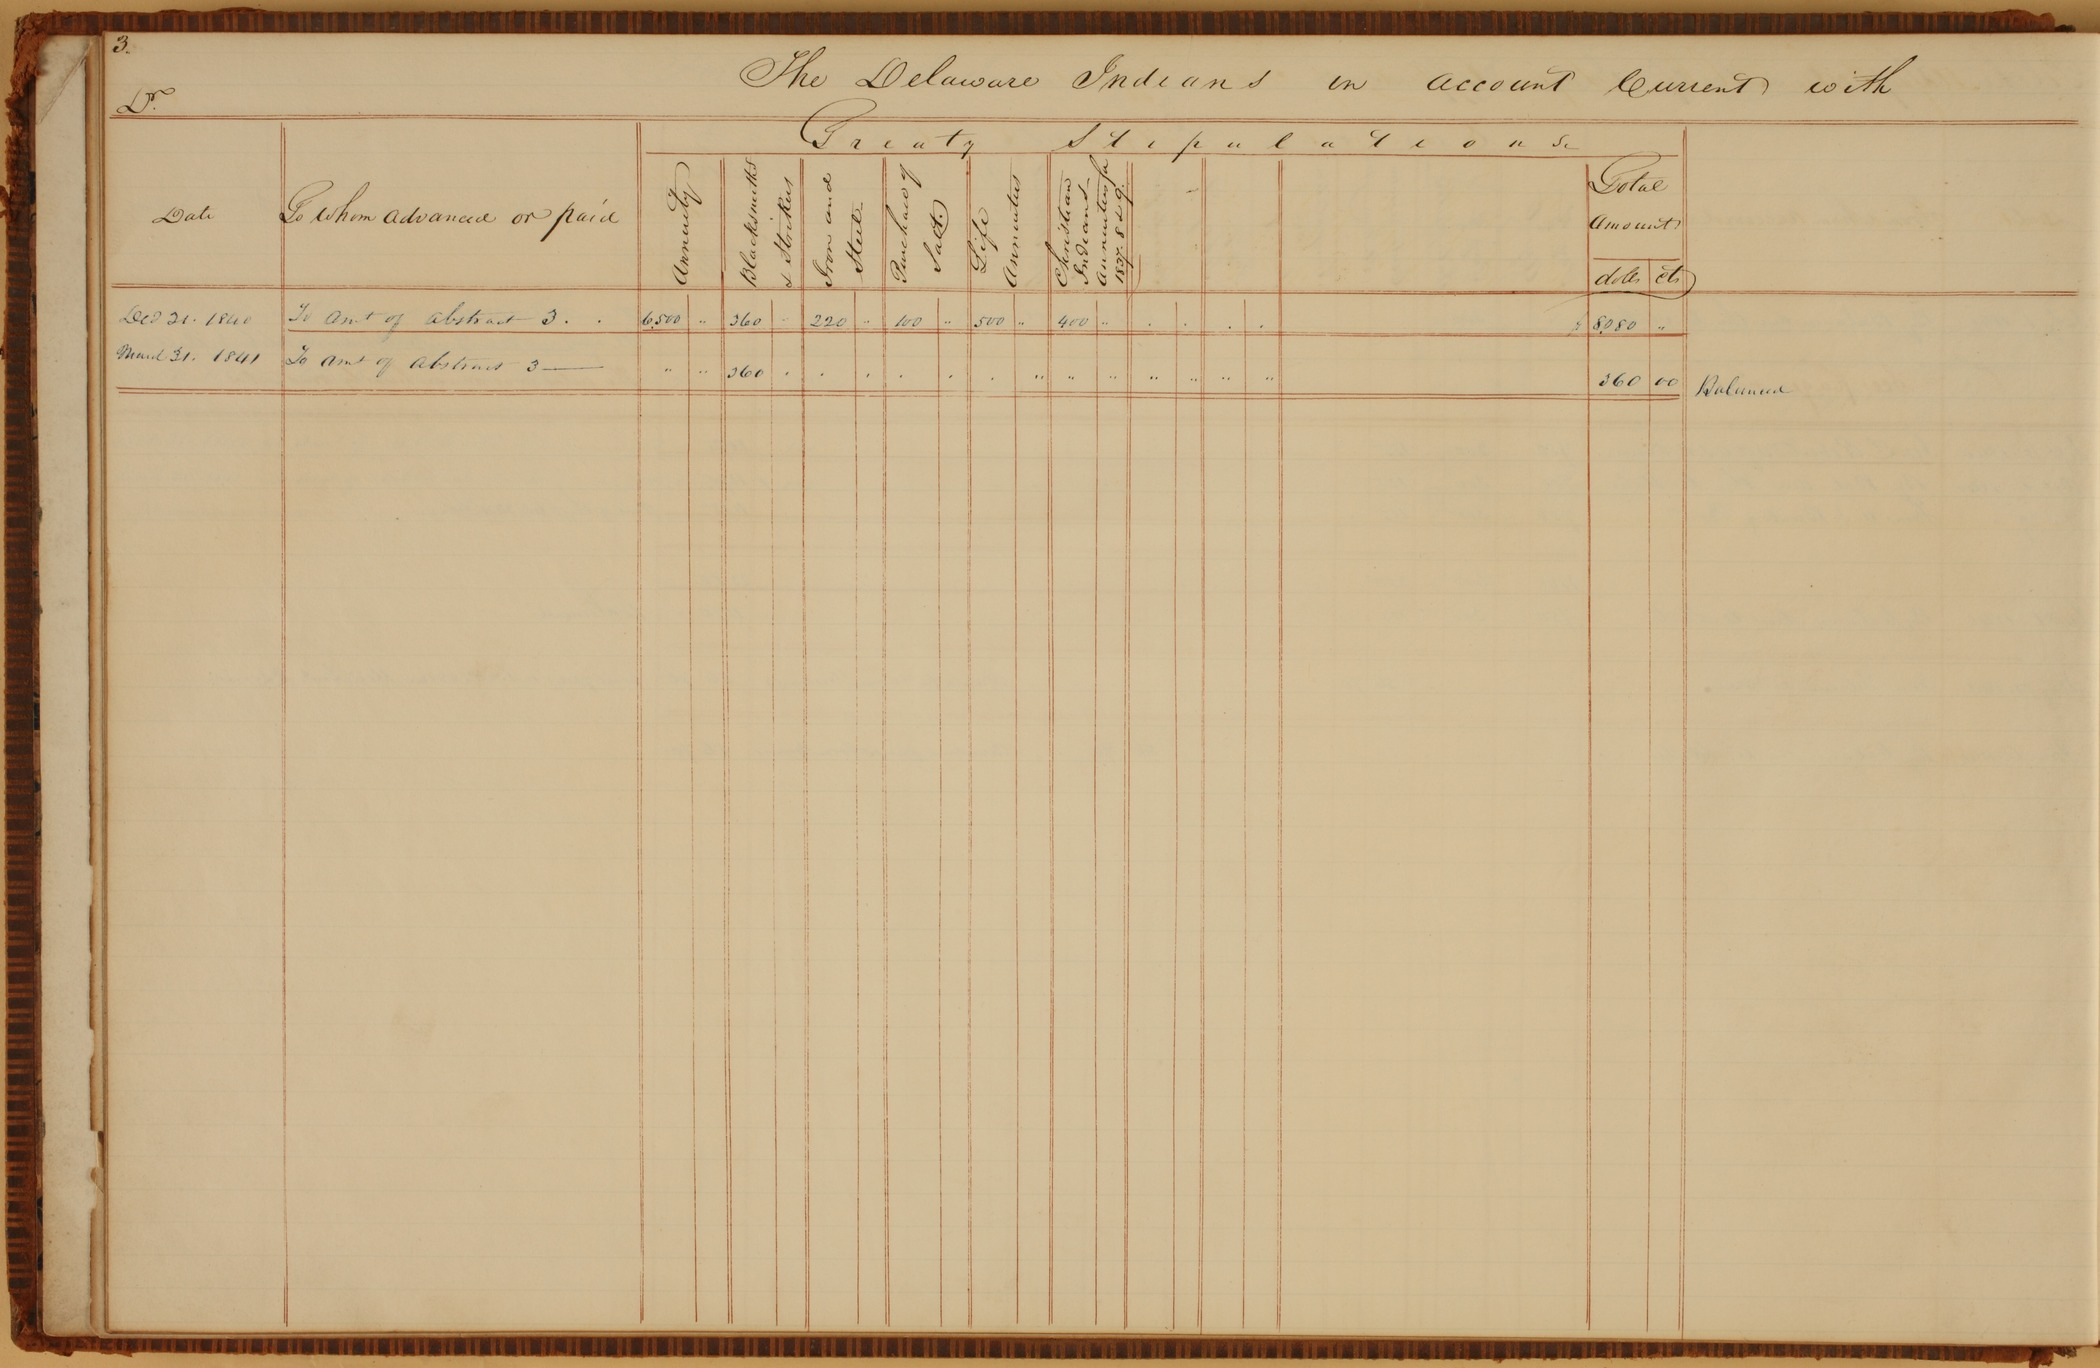 United States Office of Indian Affairs, Central Superintendency, St. Louis, Missouri. Volume 13, Accounts - Page 3